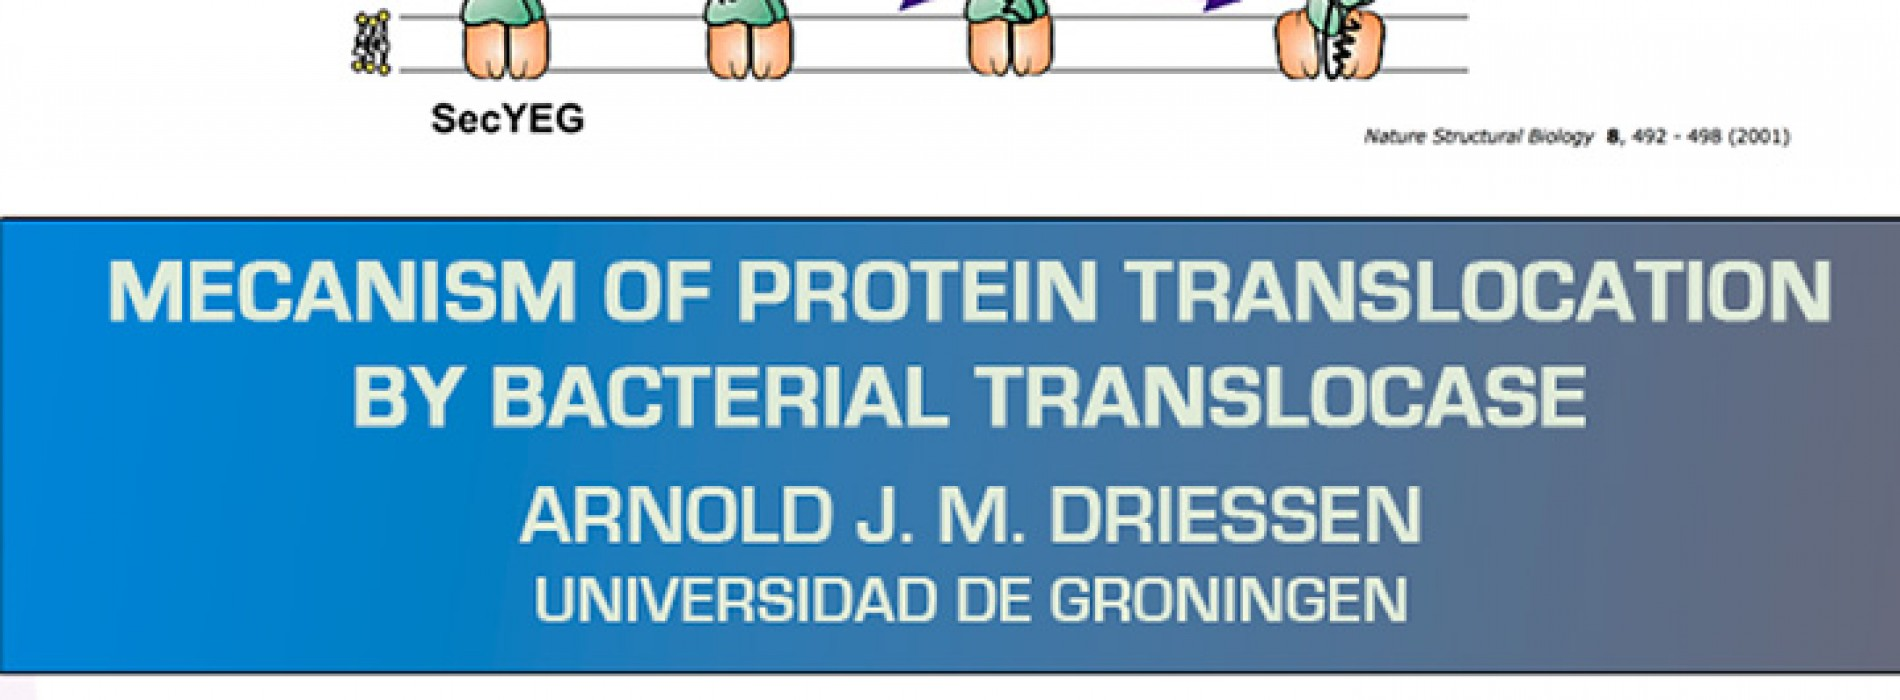 "Charla: ""Mecanism of Protein Translocation by Bacterial Translocase"" – Arnold J. M. Driessen"